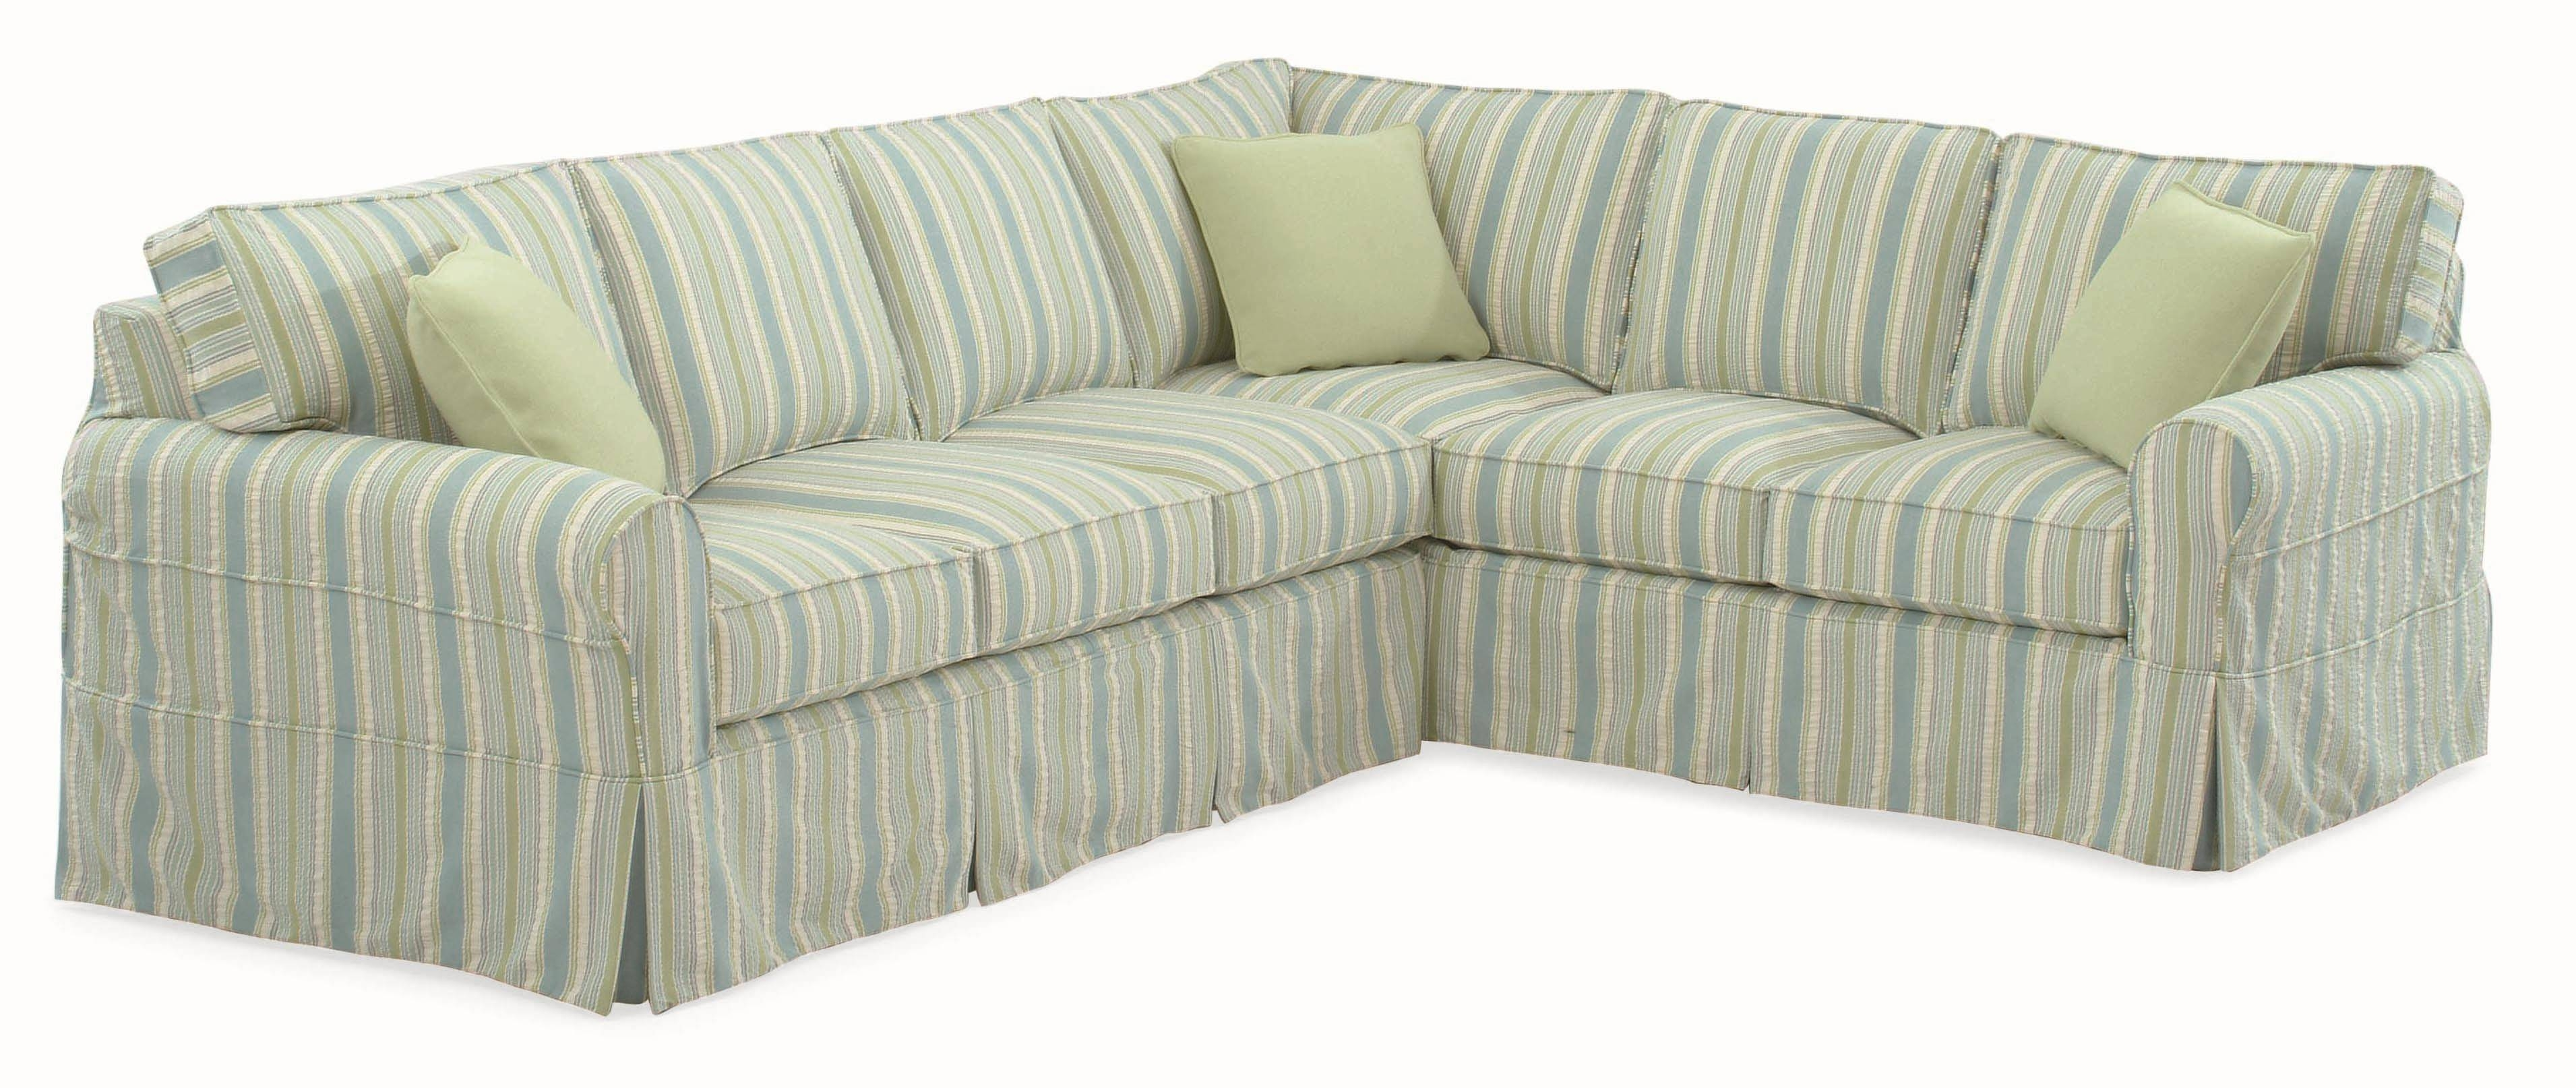 30 Best Abbyson Living Charlotte Beige Sectional Sofa And Ottoman